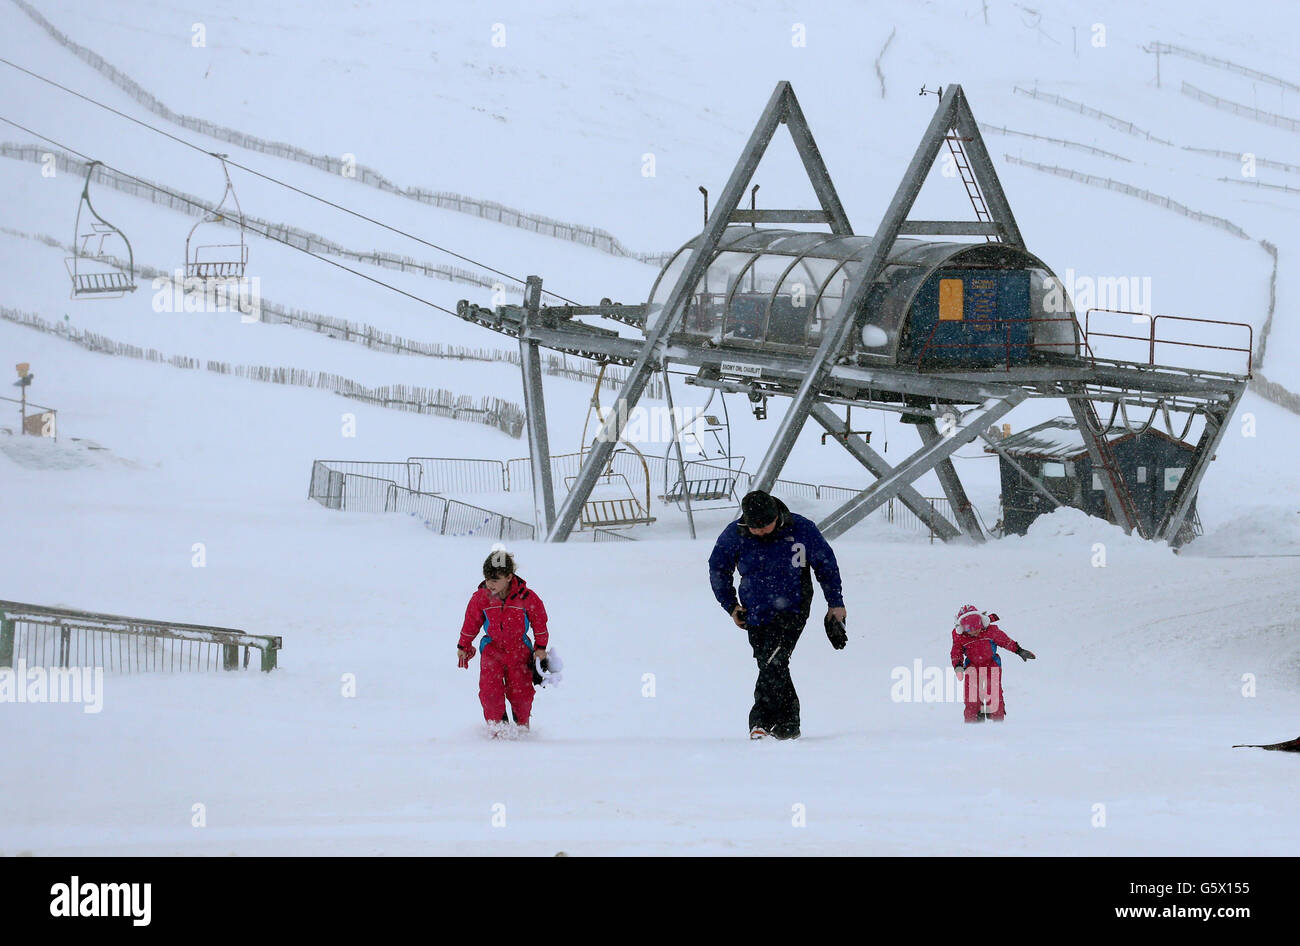 chair lift accident bath chairs for adults chairlift at ski resort stock photo 106907169 alamy